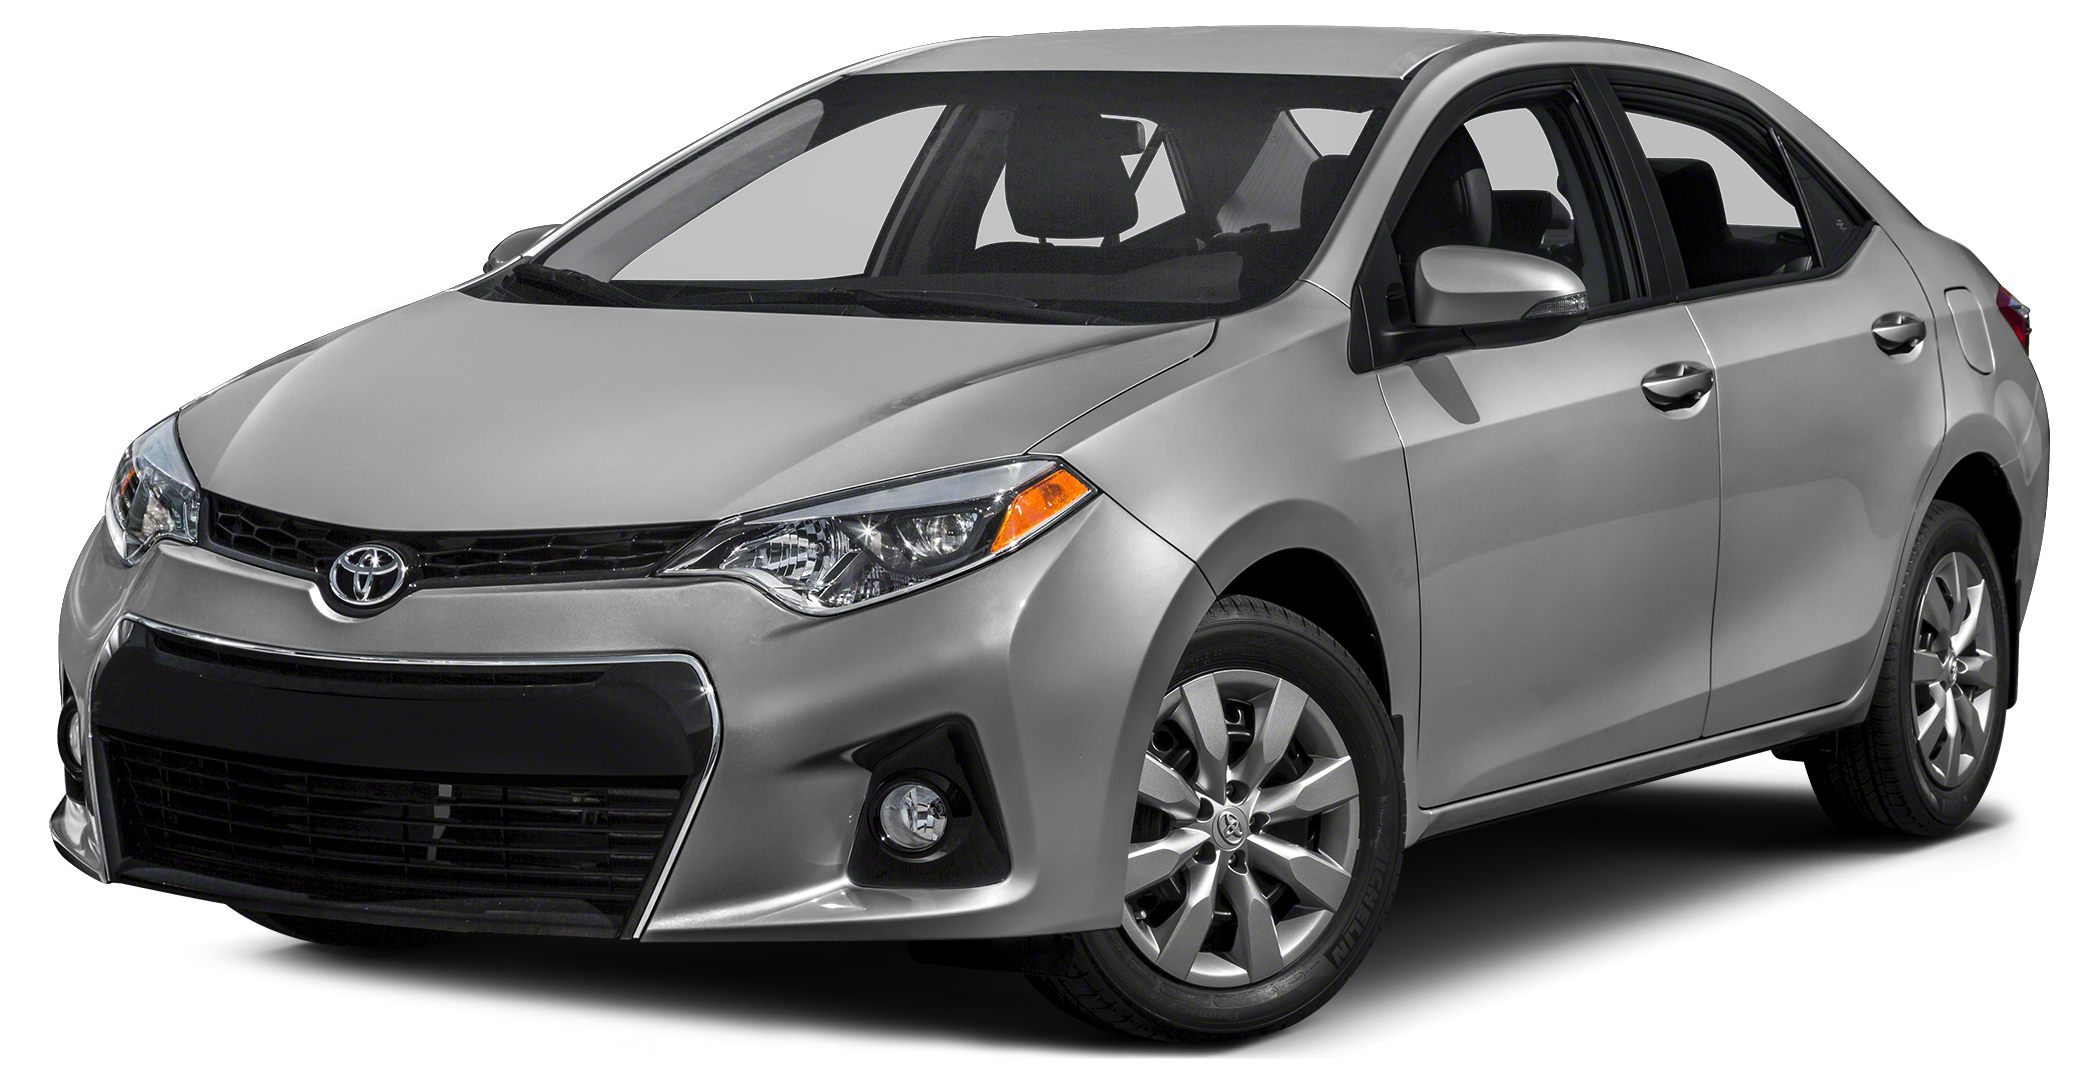 2014 Toyota Corolla S Plus WE SELL OUR VEHICLES AT WHOLESALE PRICES AND STAND BEHIND OUR CARS